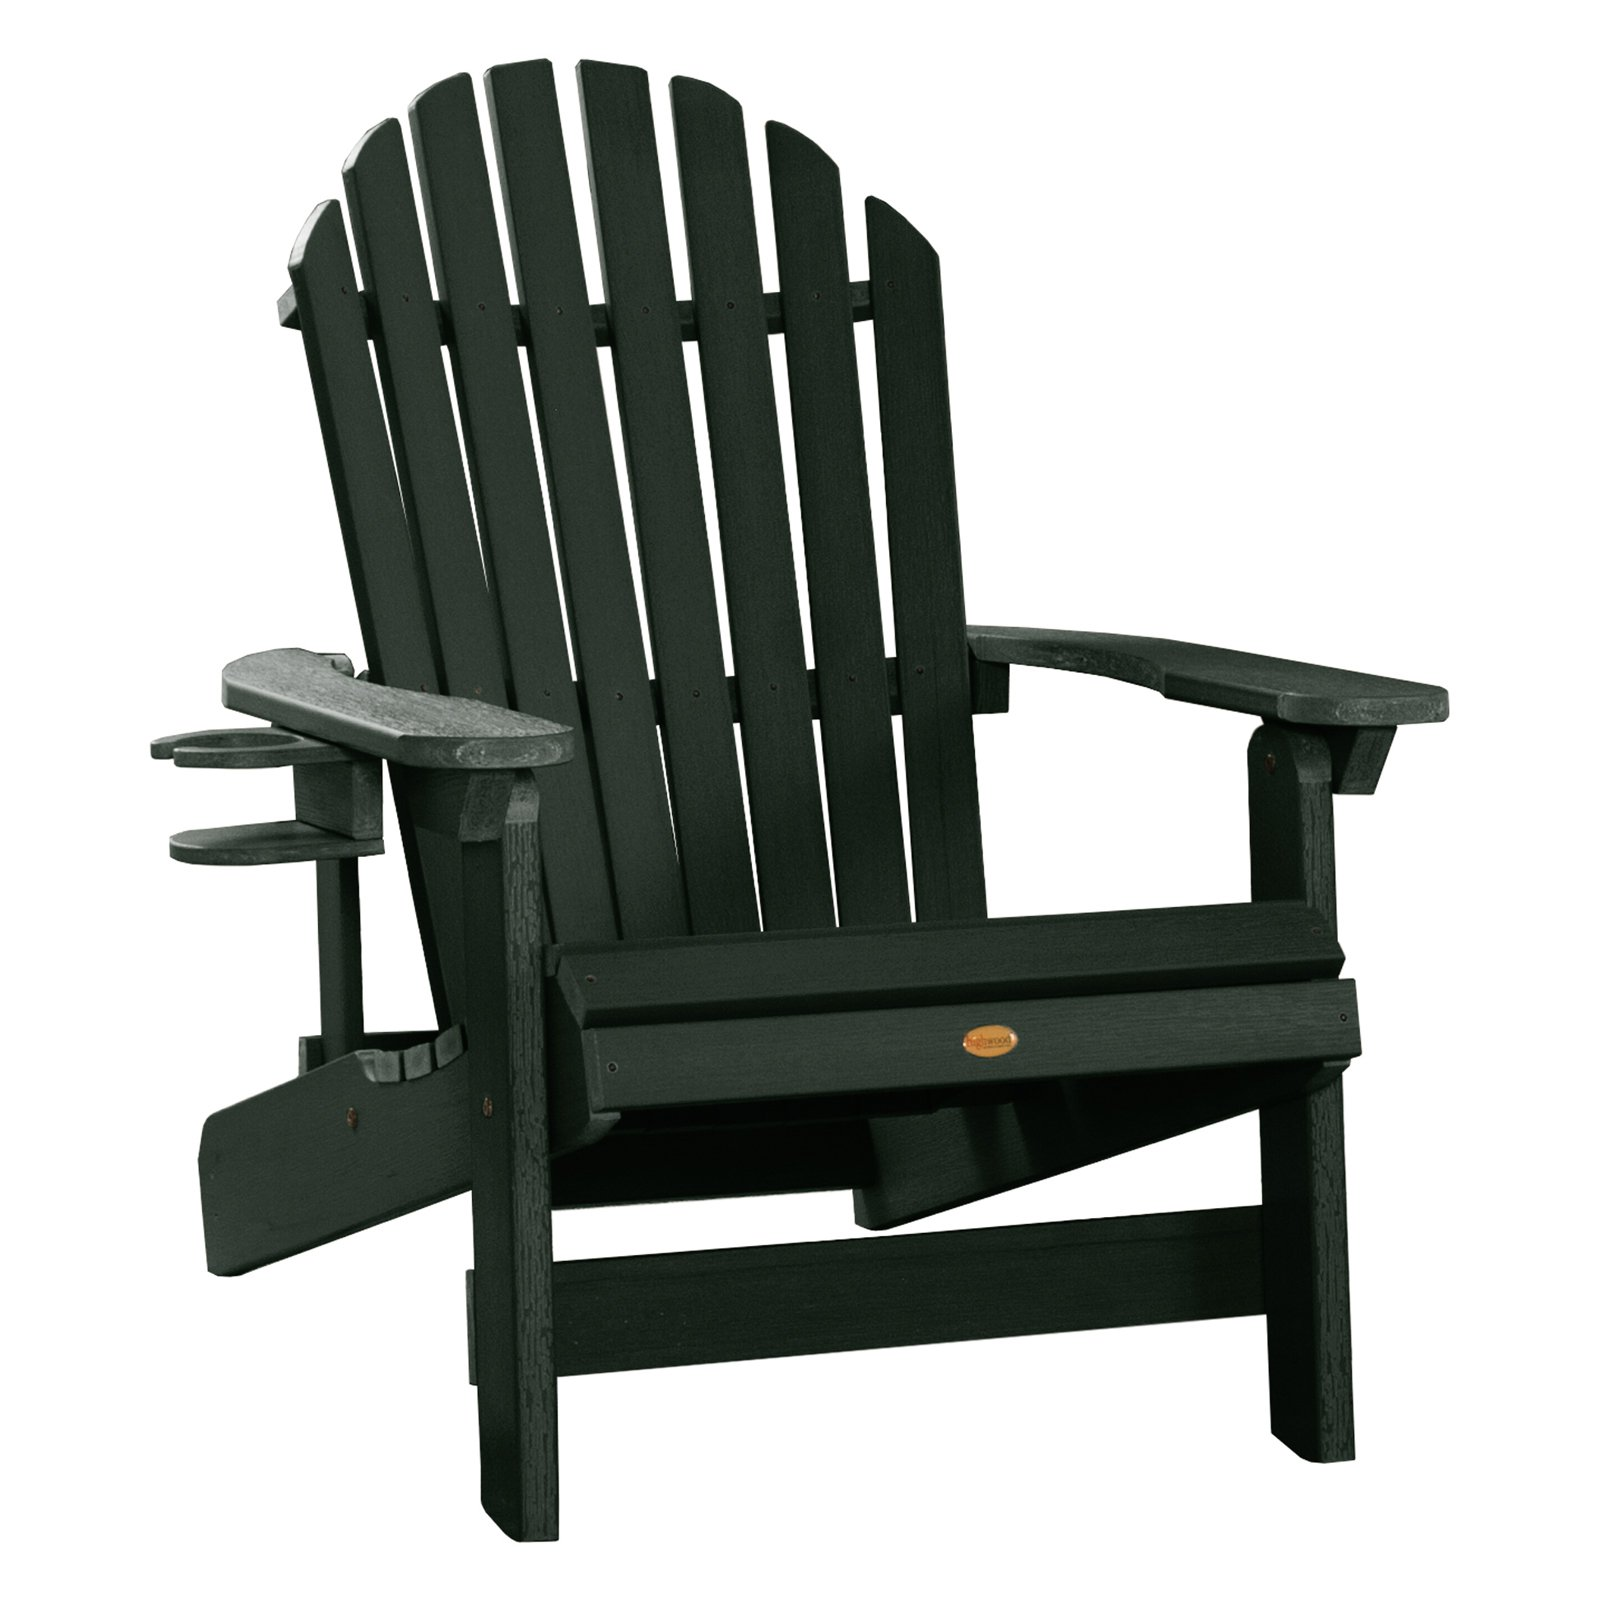 Outdoor highwood usa king hamilton folding and reclining adirondack chair with cup holder charleston green